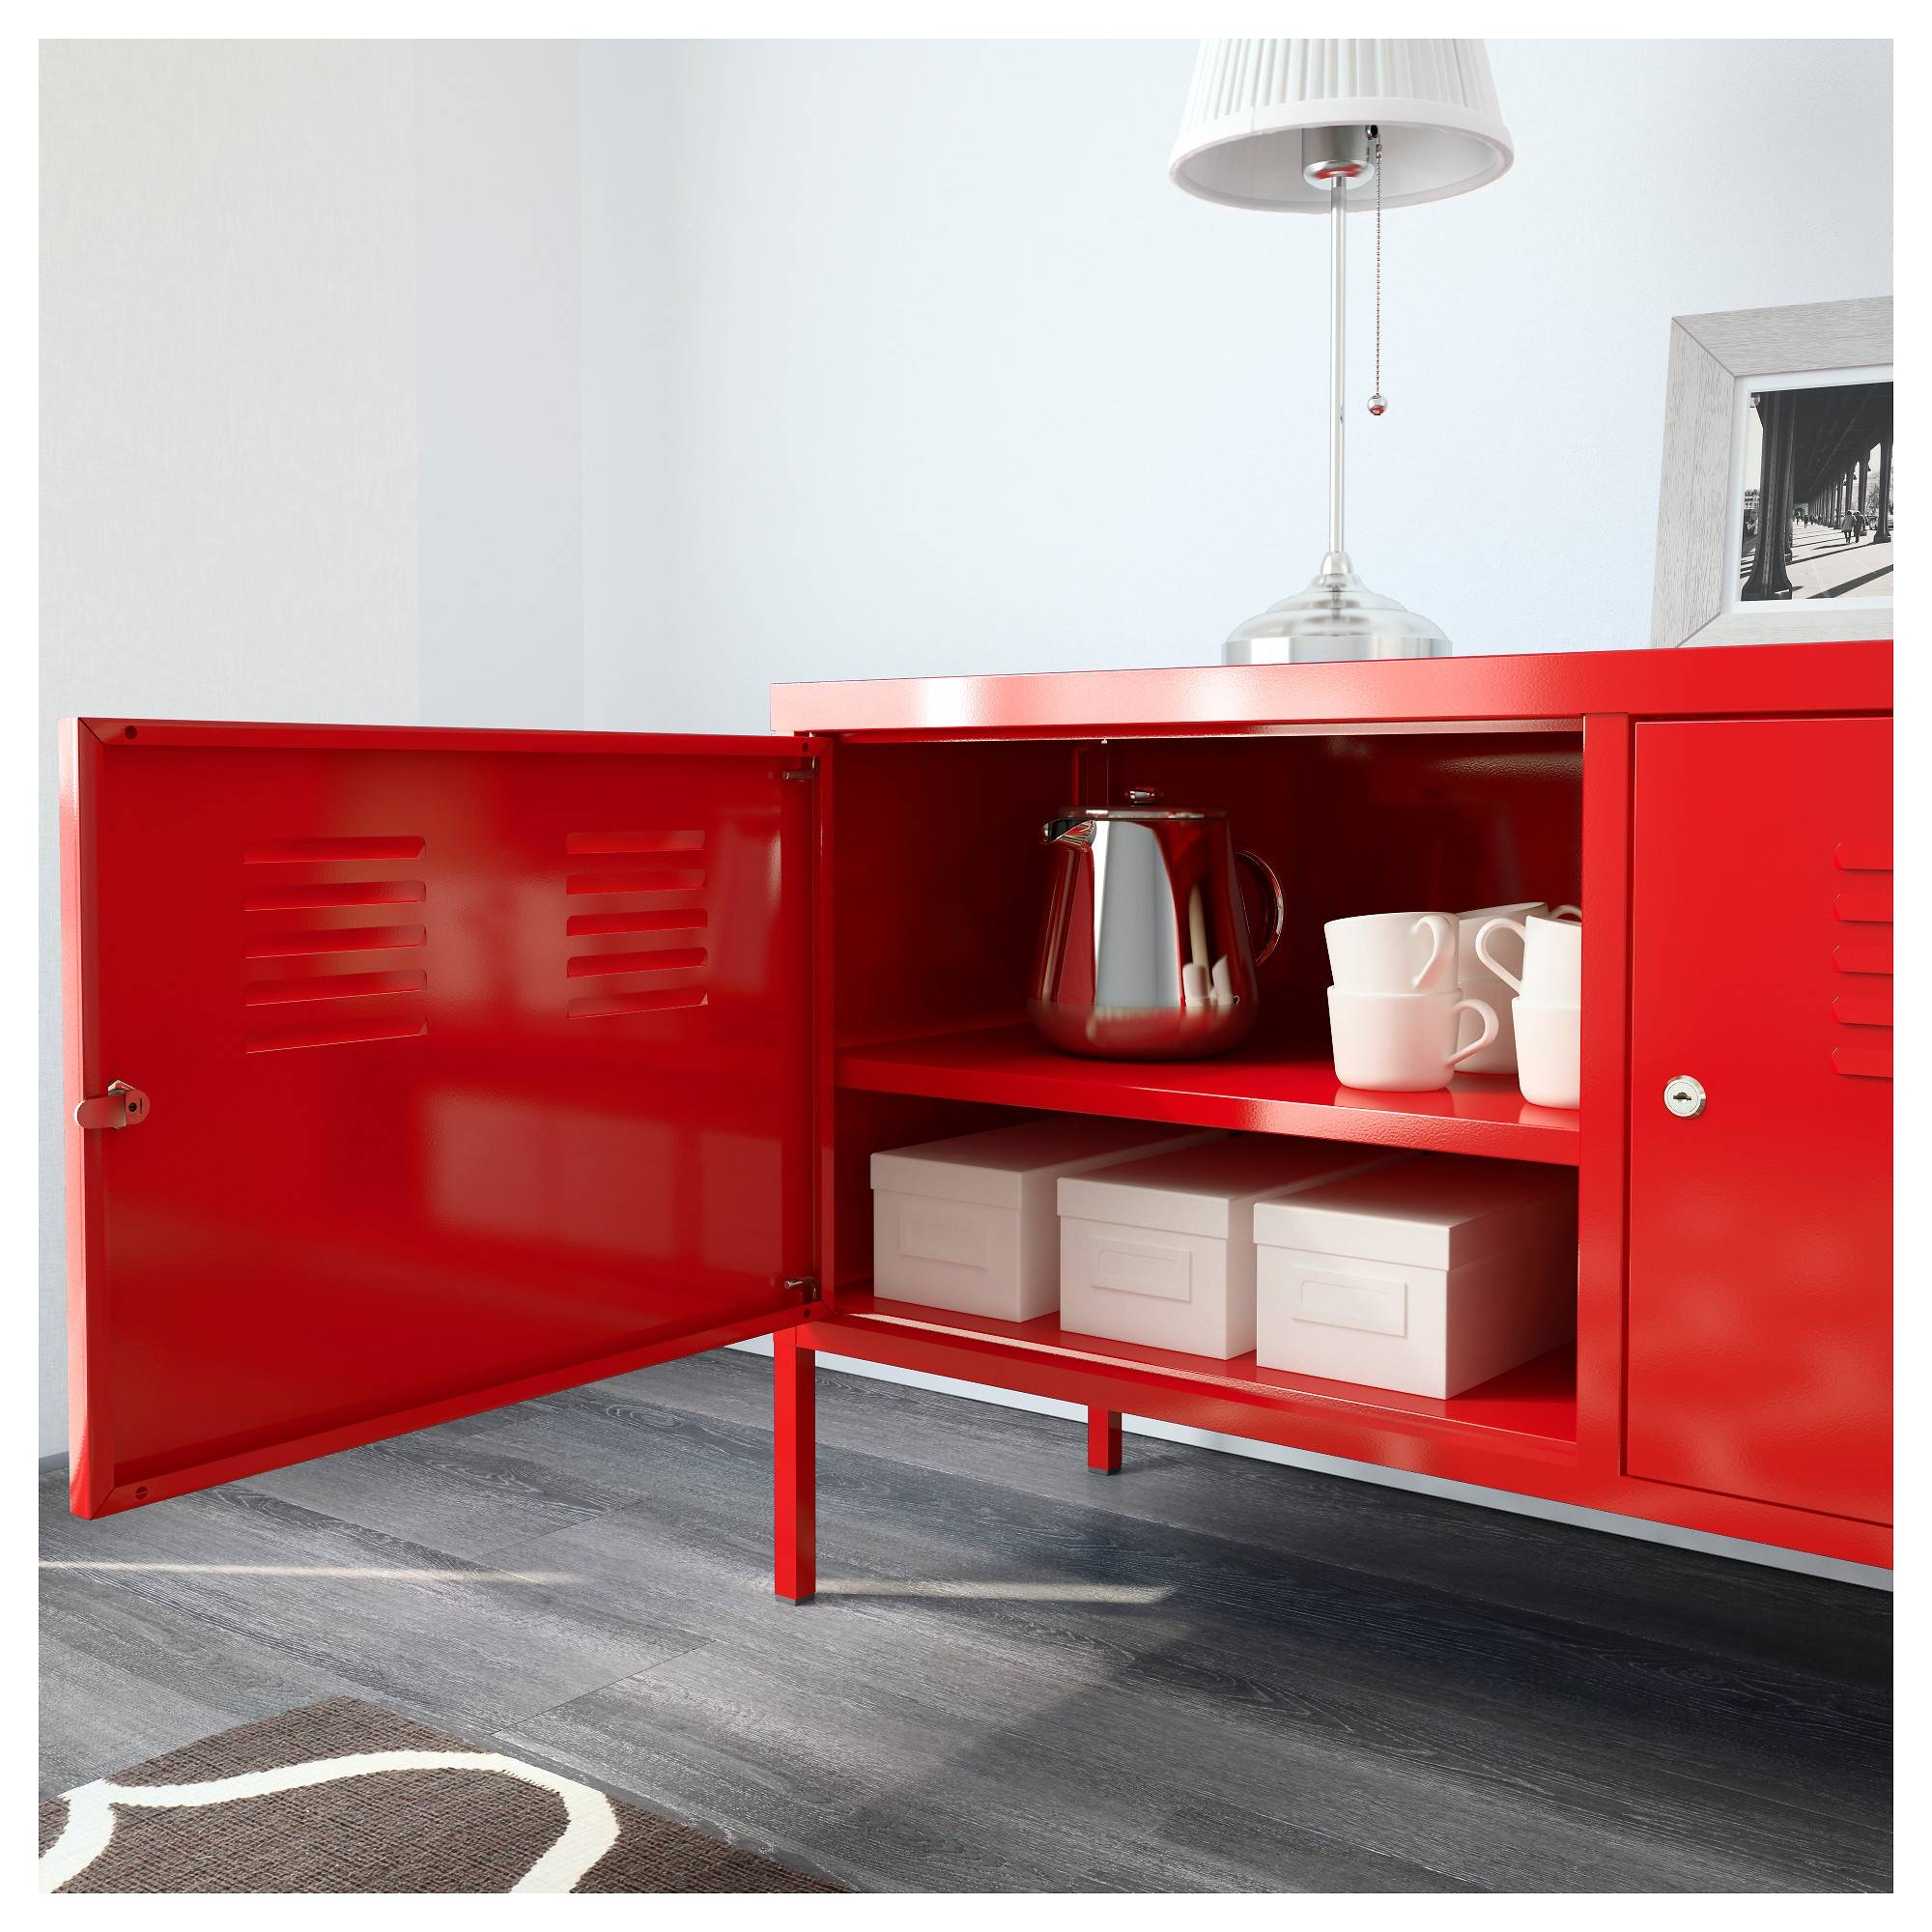 Ikea Ps Cabinet Red 119X63 Cm - Ikea in Ikea Red Sideboards (Image 7 of 15)